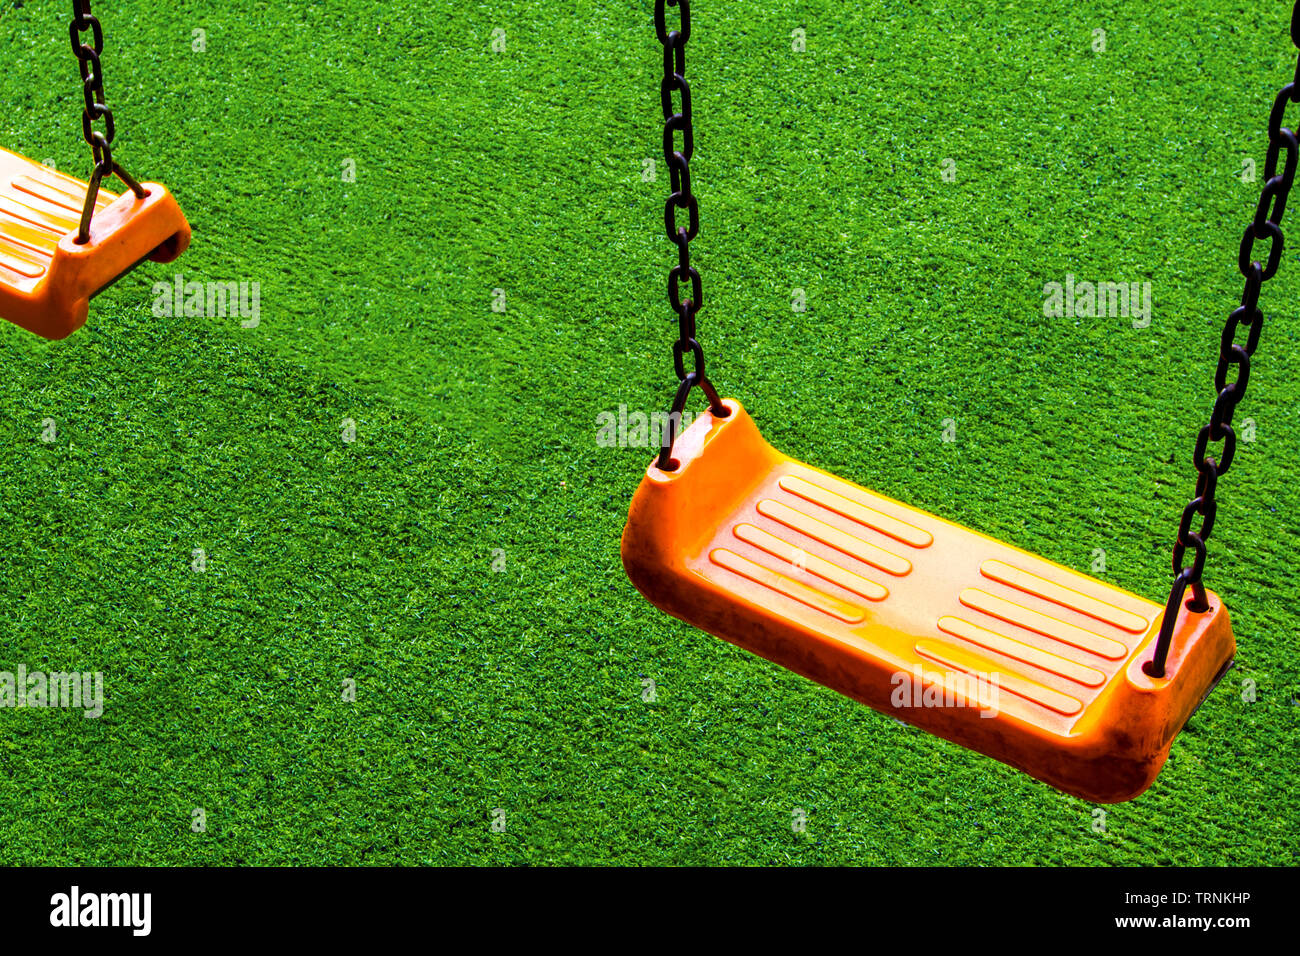 Double vivid orange color Swing seat on the artificial grass school yard - Stock Image